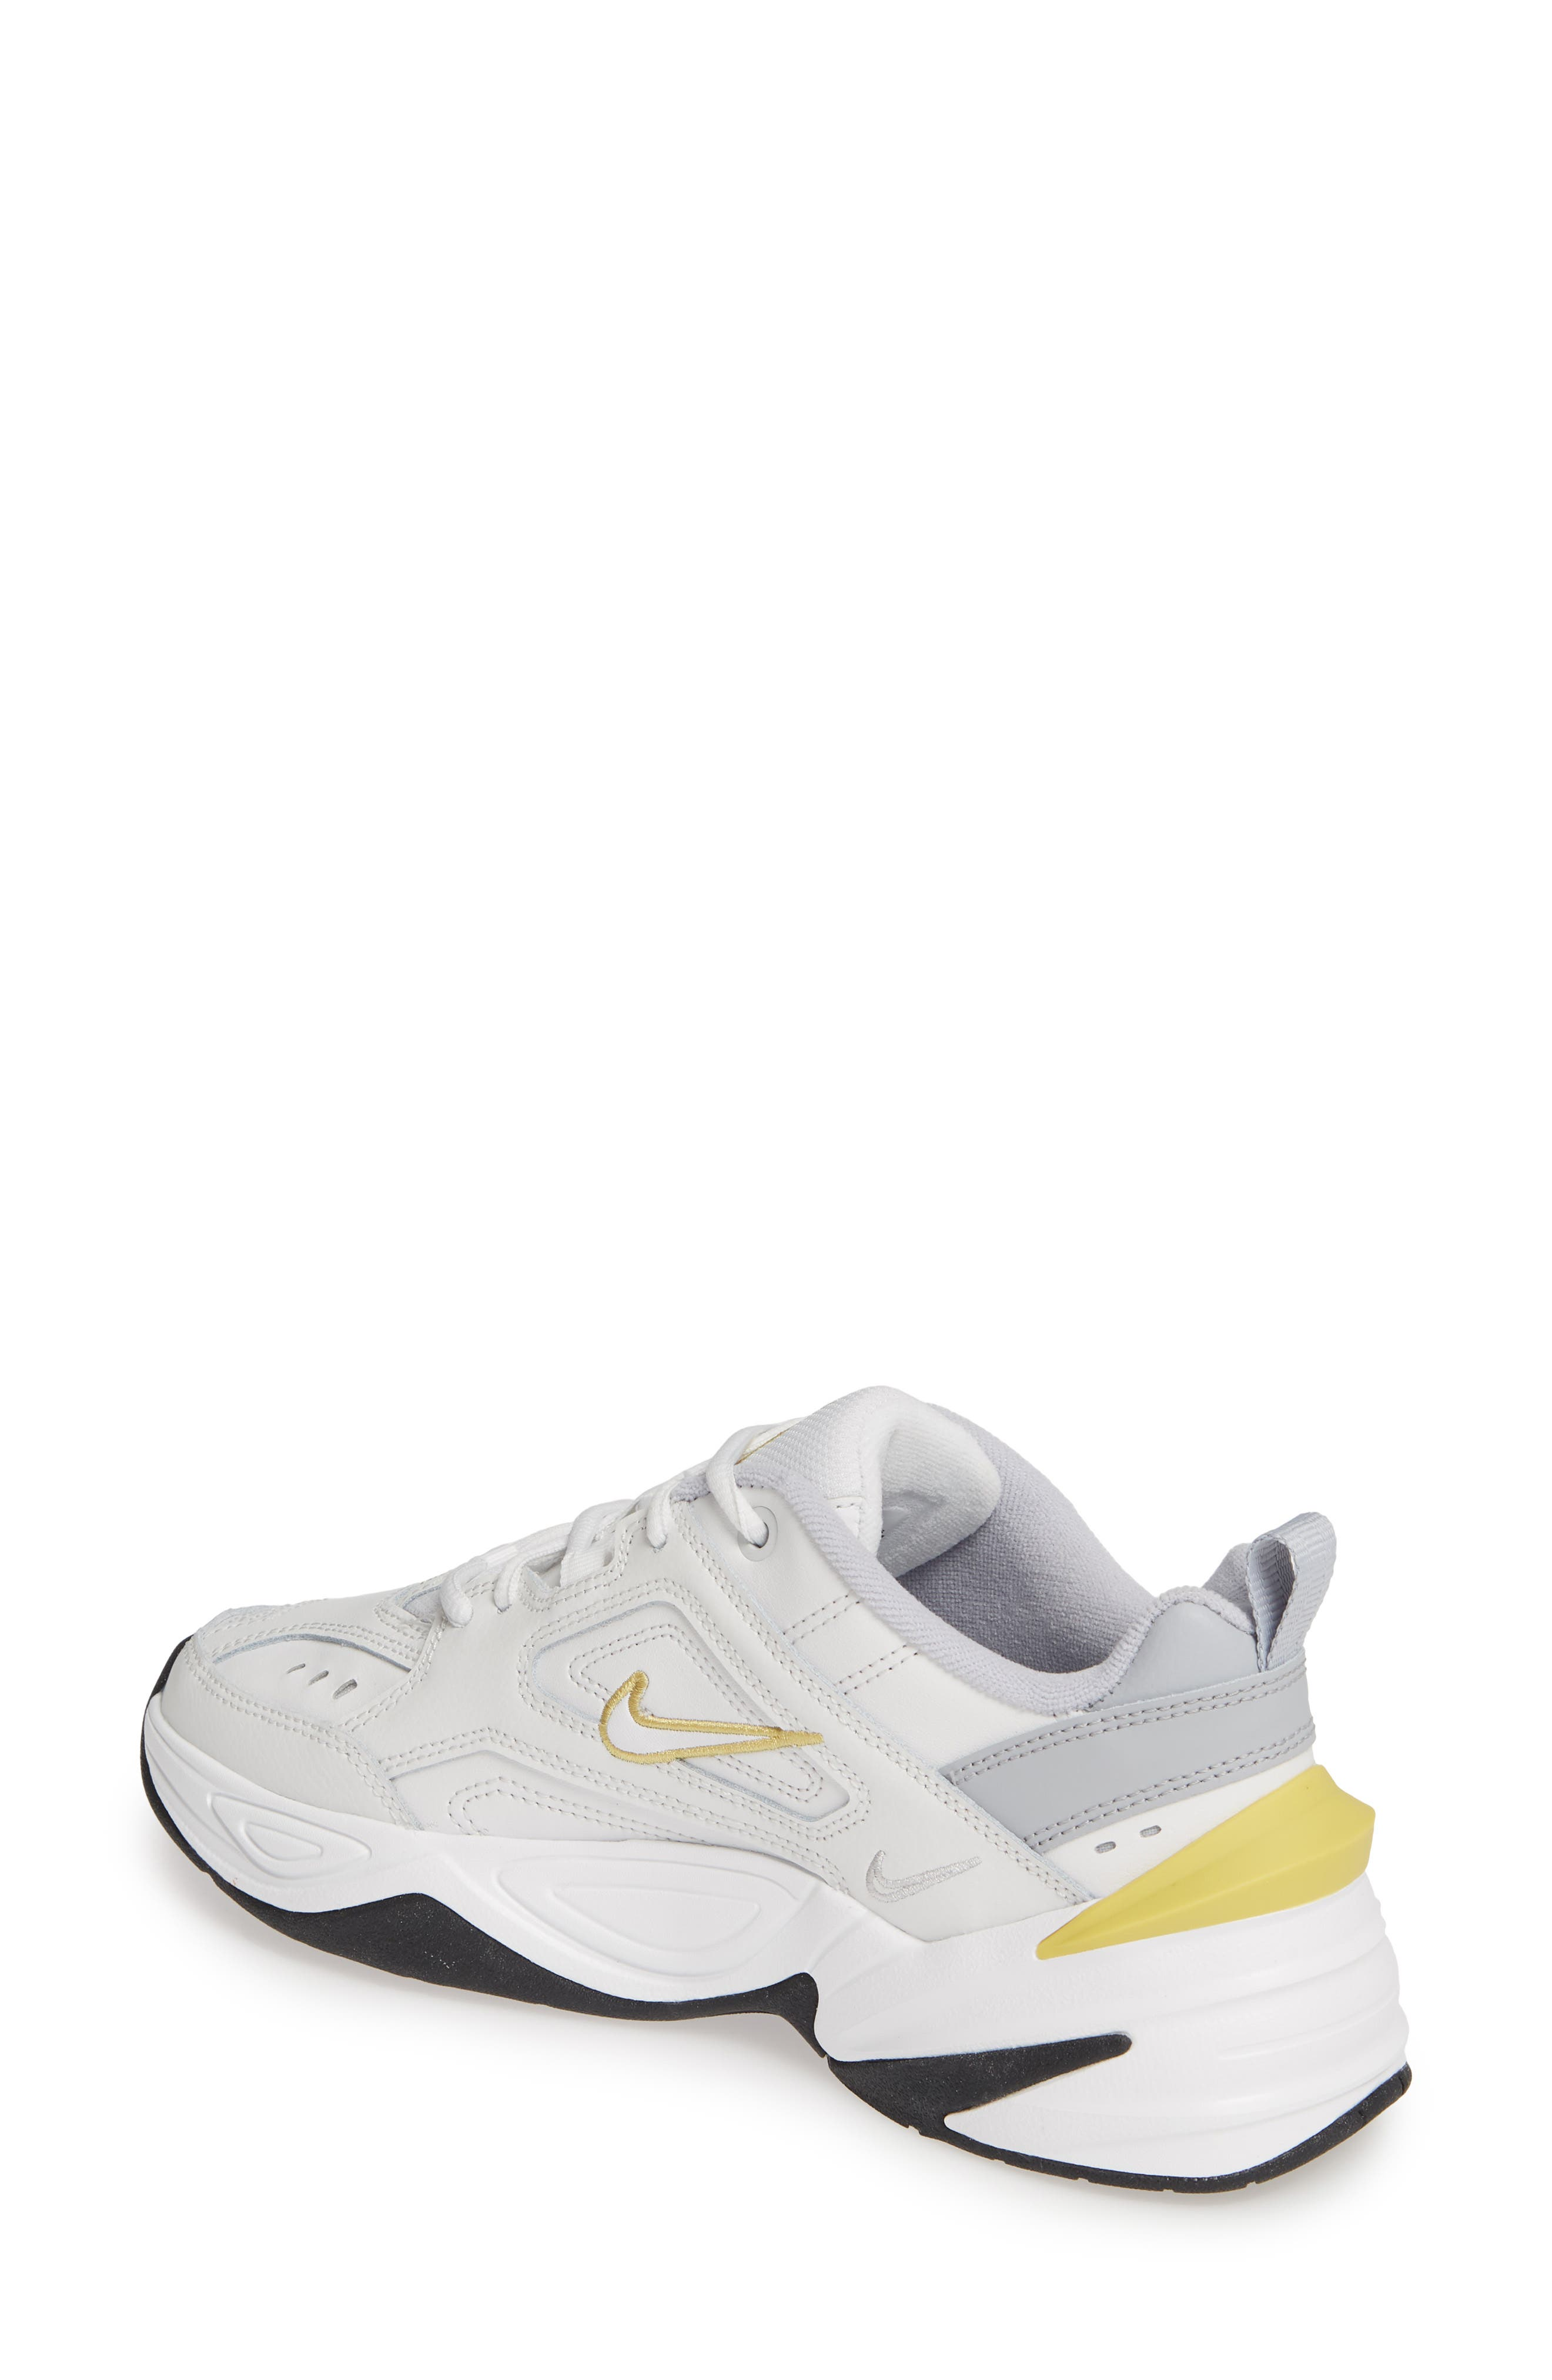 NIKE,                             M2K Tekno Sneaker,                             Alternate thumbnail 2, color,                             PLATINUM TINT/ CELERY/ GREY